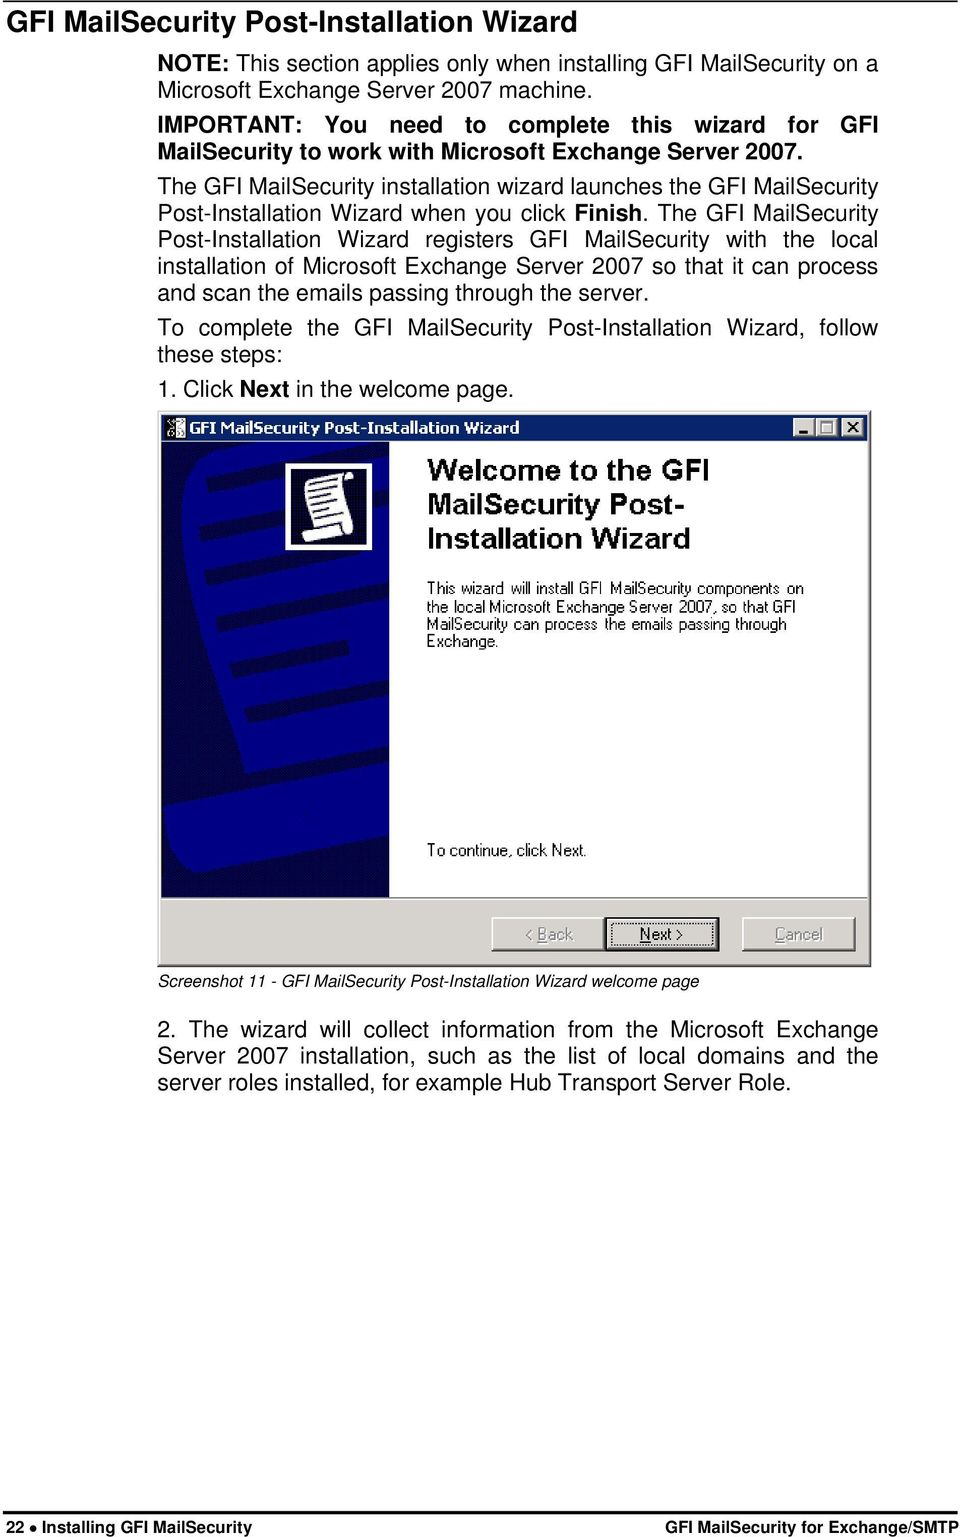 The GFI MailSecurity installation wizard launches the GFI MailSecurity Post-Installation Wizard when you click Finish.